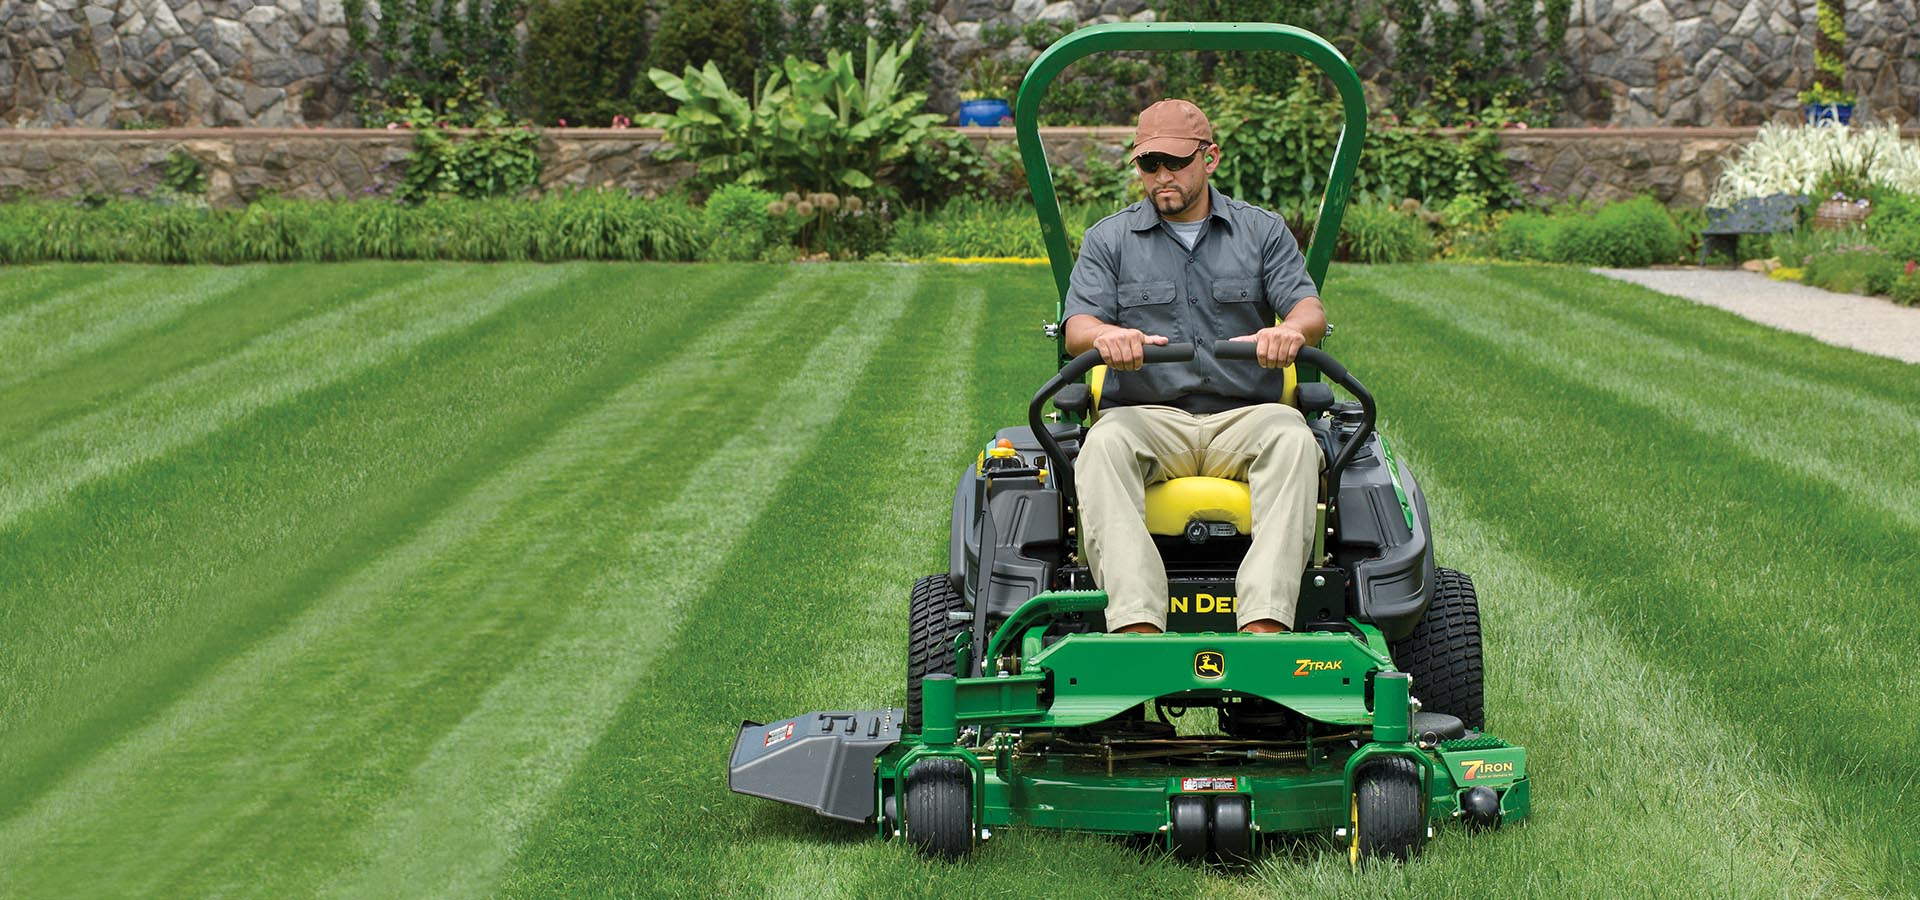 161300 GMT ProGreen Plus  Knoxville TN  Lawn Mower